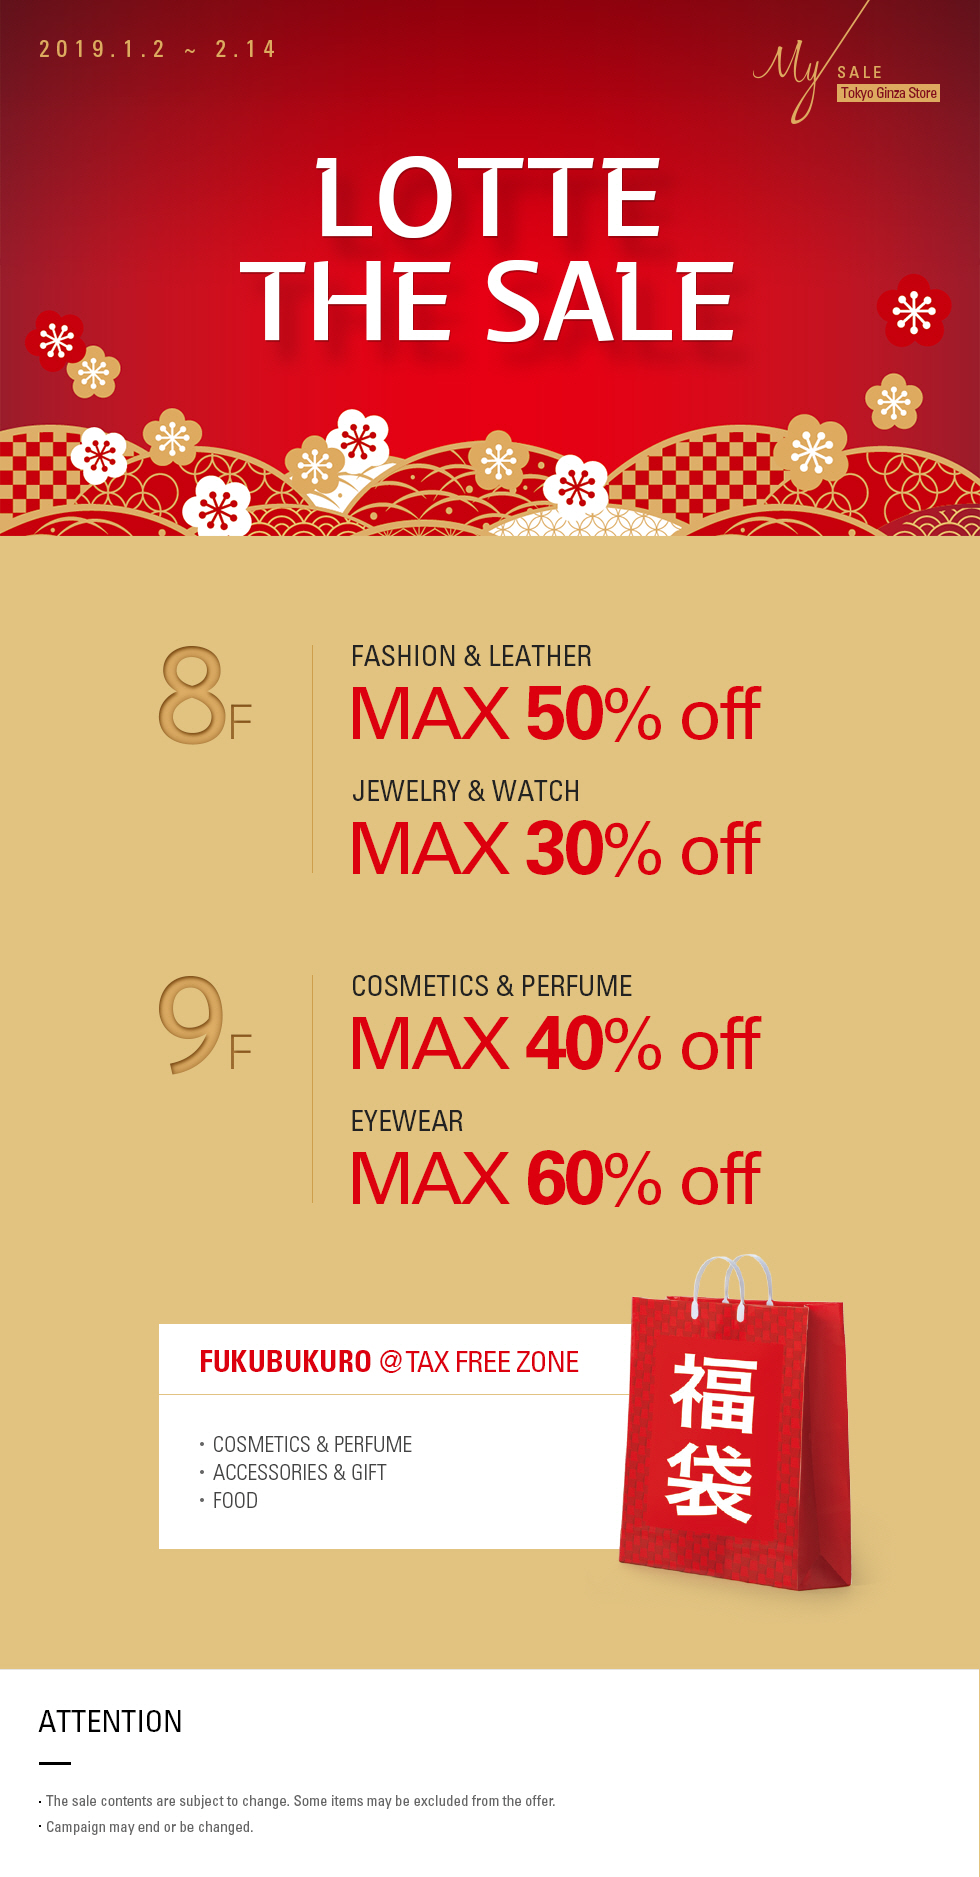 Tokyo Ginza Store LOTTE THE SALE